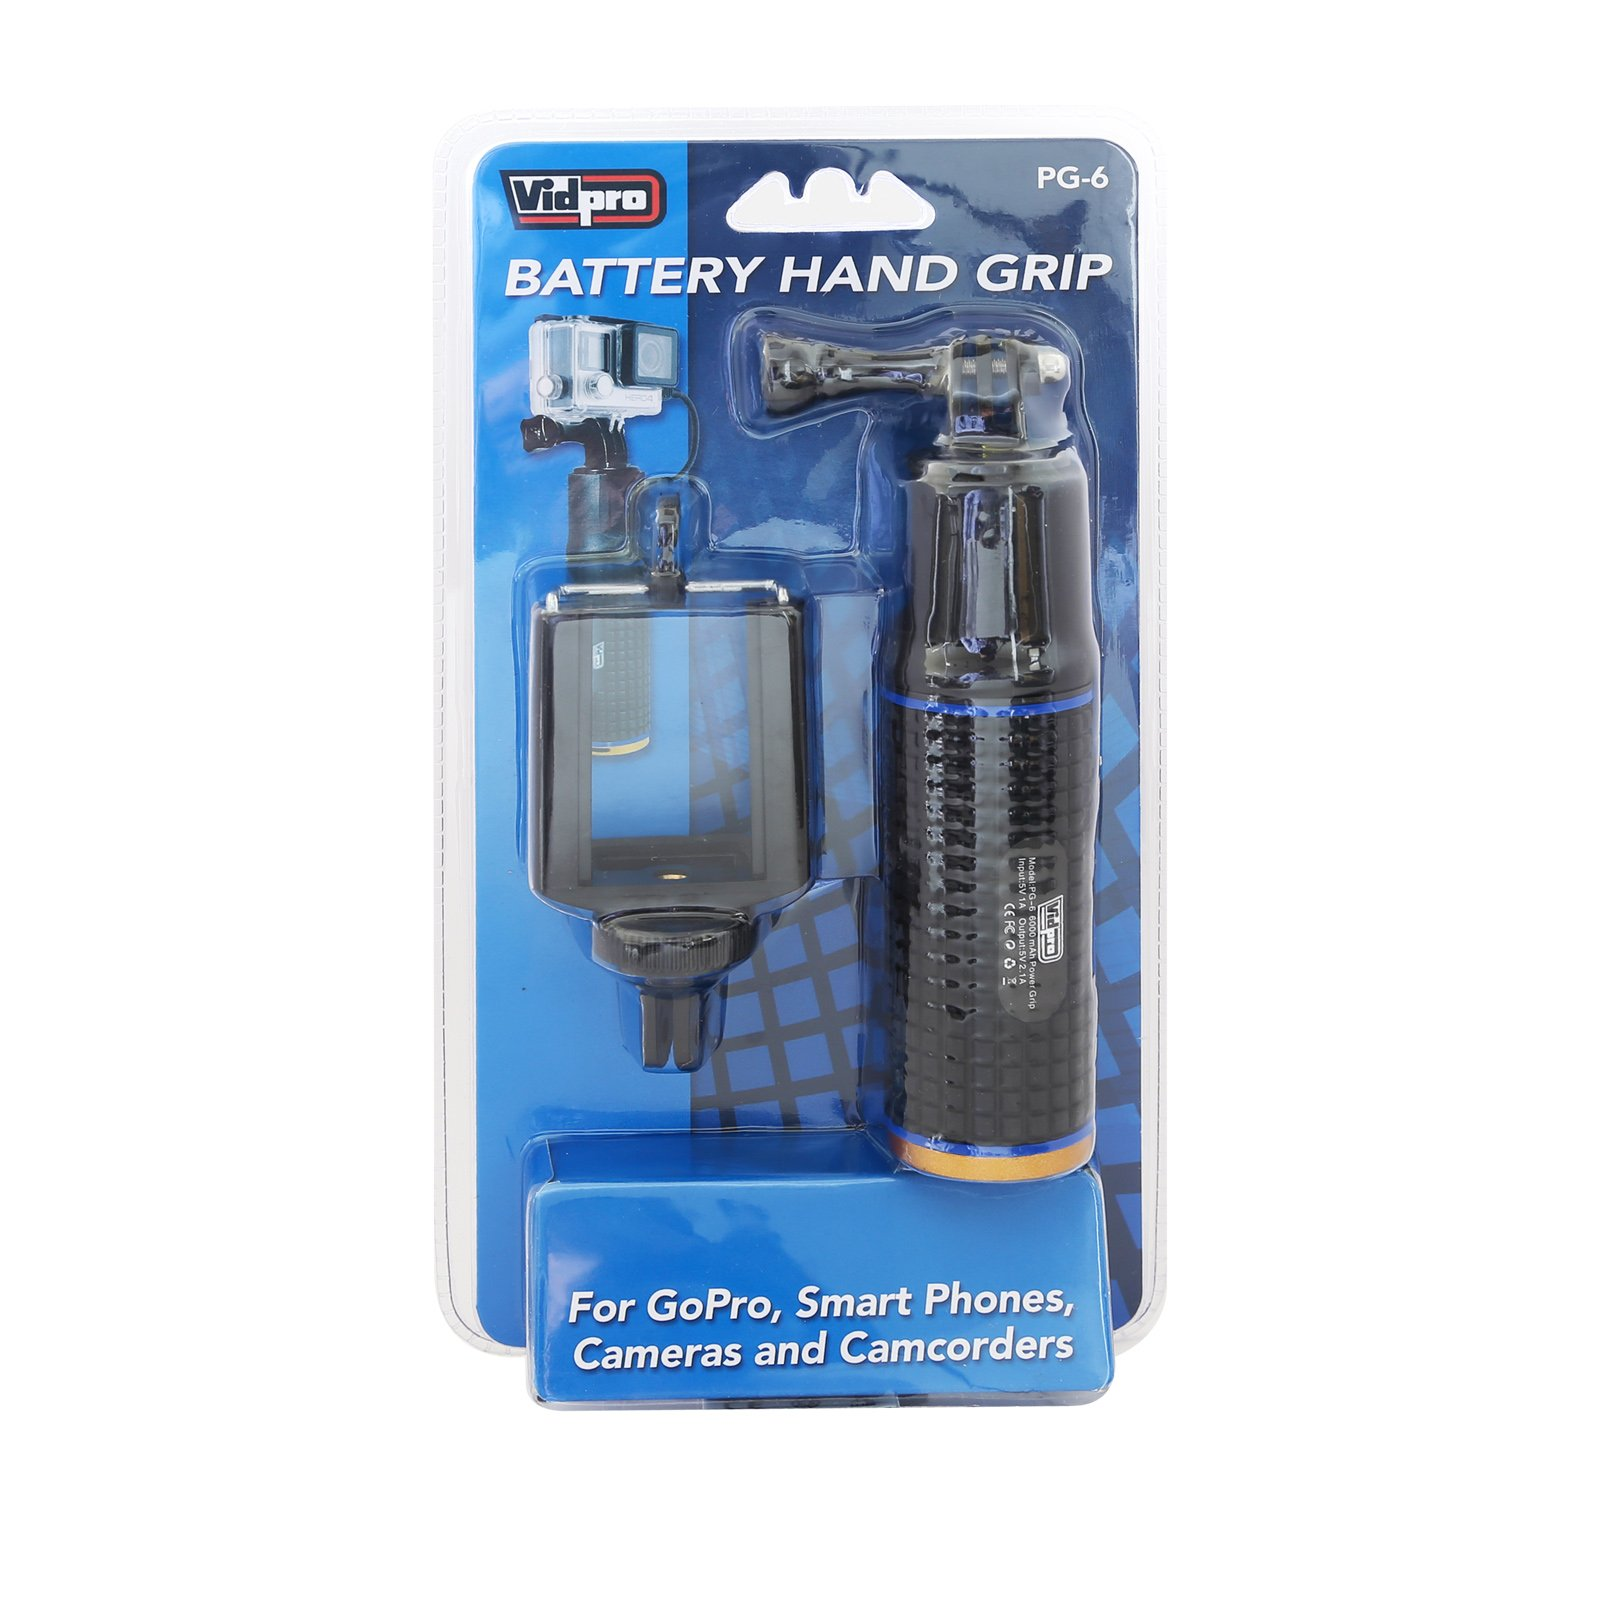 Panasonic HC-V800 Camcorder Monopods PG-6 Battery Hand Grip for Smartphones,Cameras and camcorders